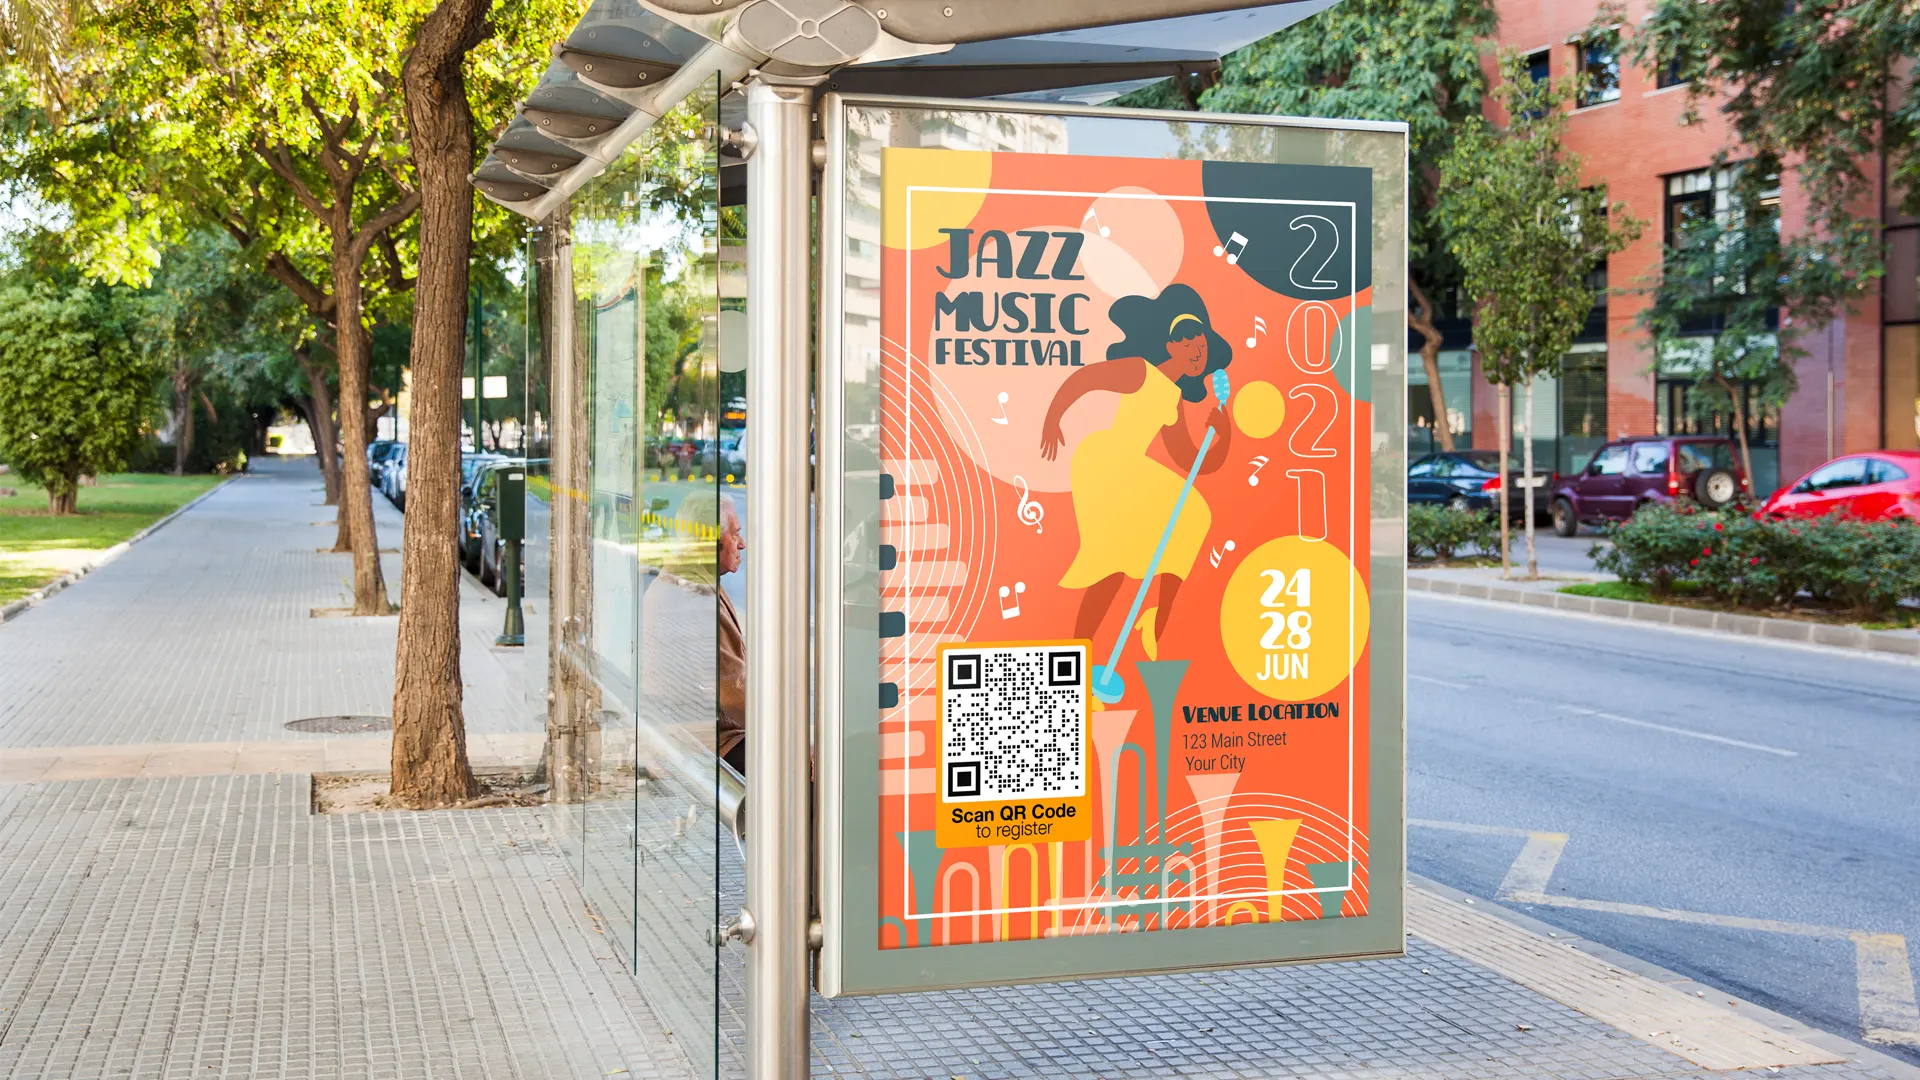 creative uses of qr codes posters for events